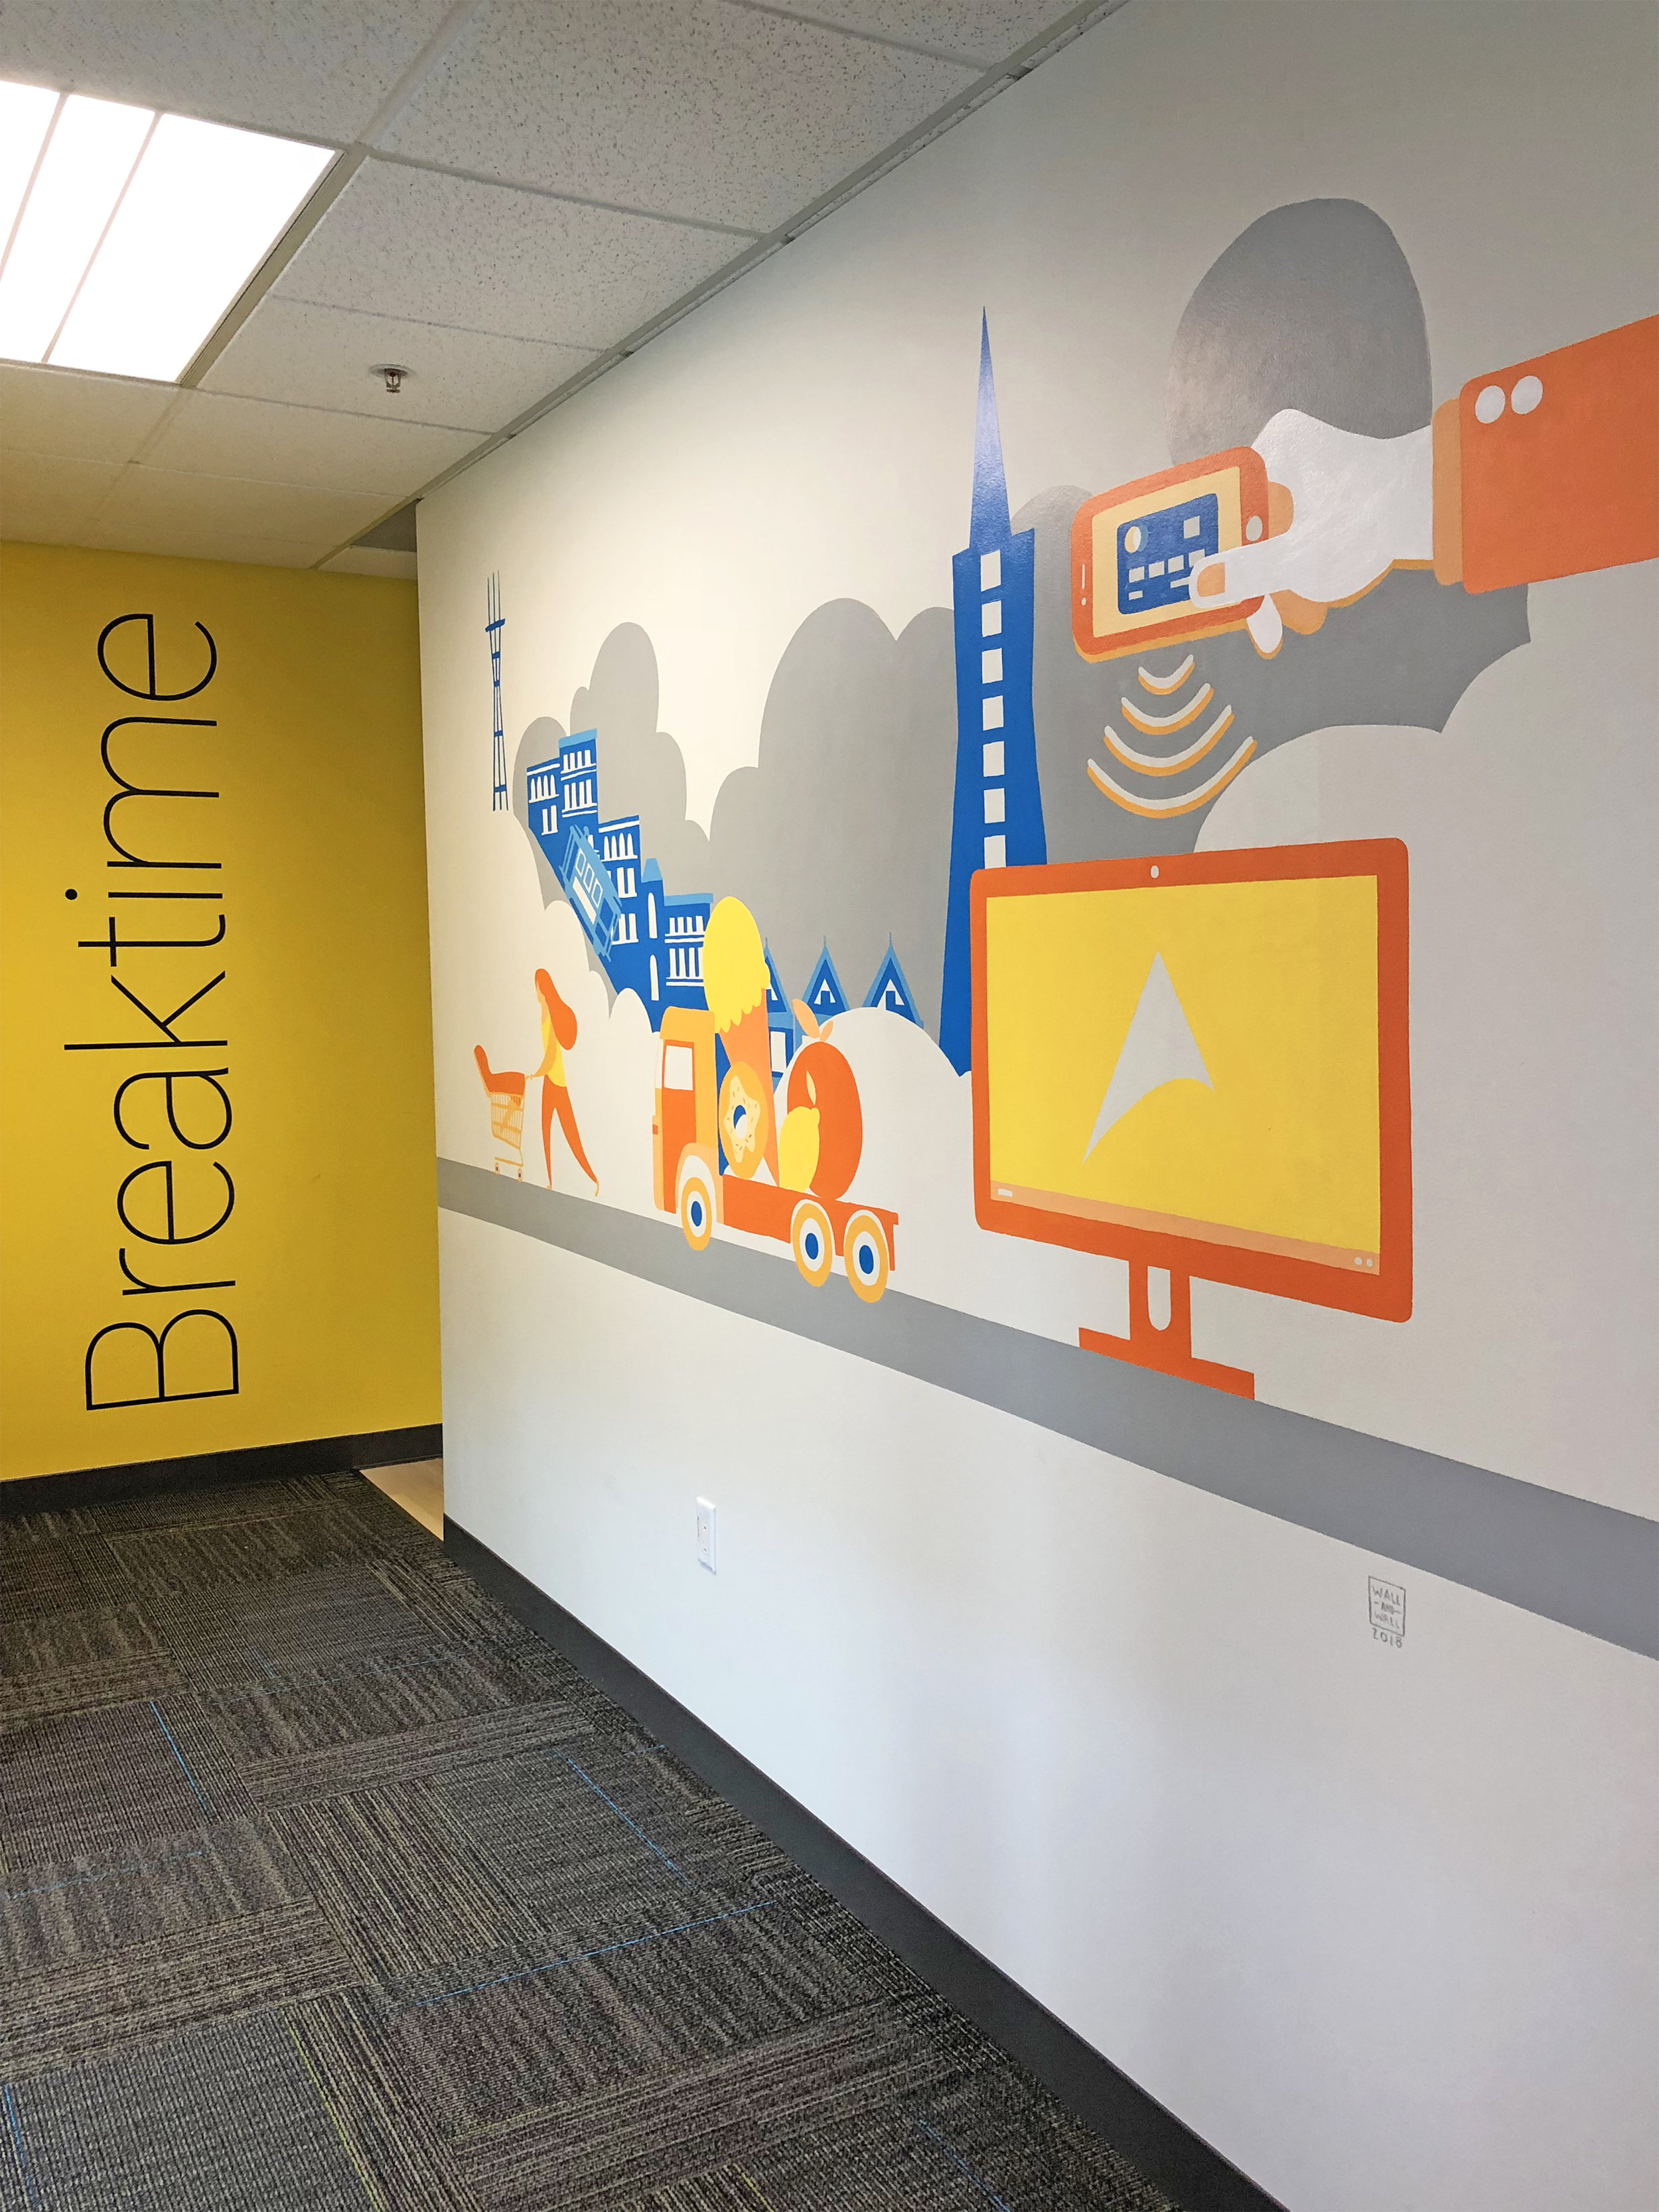 Office-commercial-mural-san-francisco-astound-wall-and-wall-mural-company.jpg